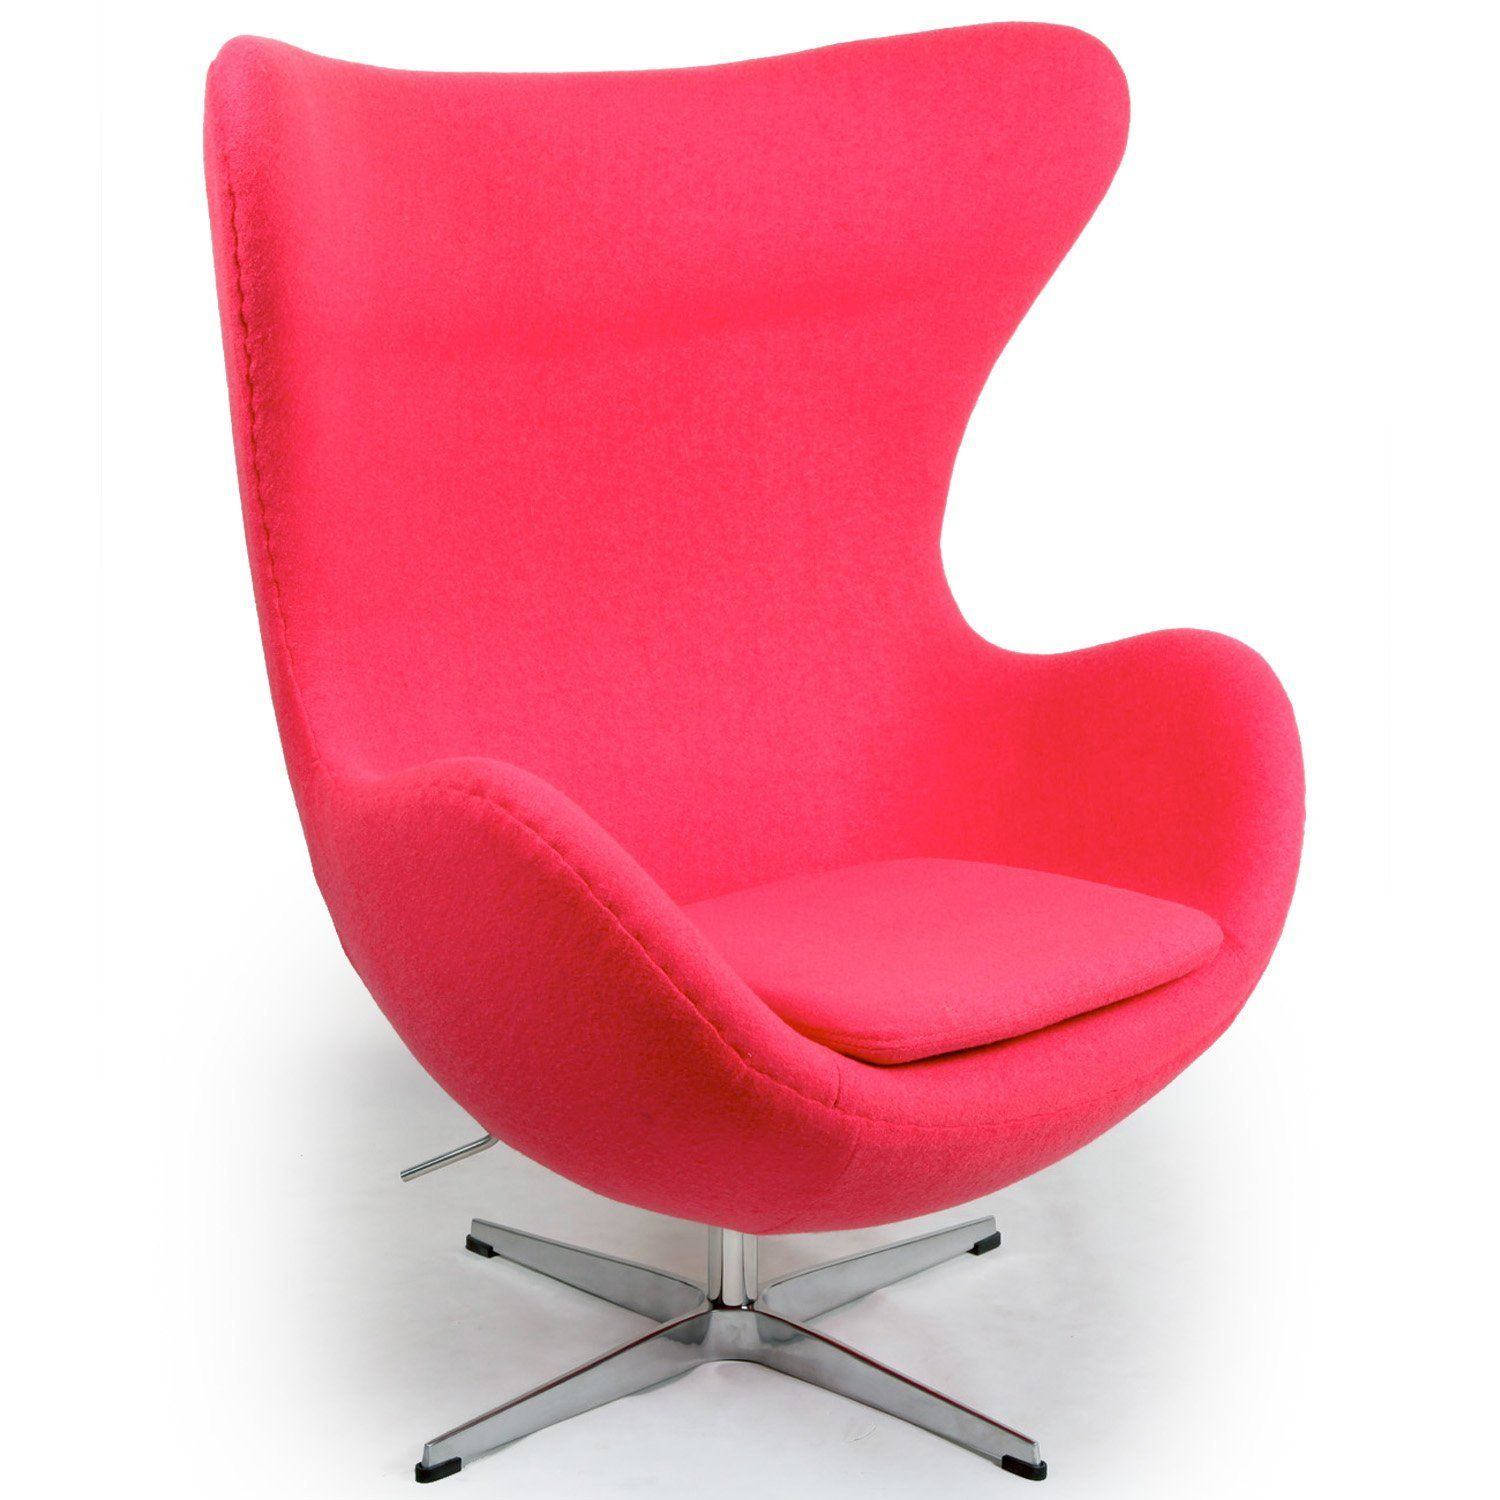 Pink Chairs For Bedrooms Funky Chairs For Teens Funky Pink Chairs For Teen Girls